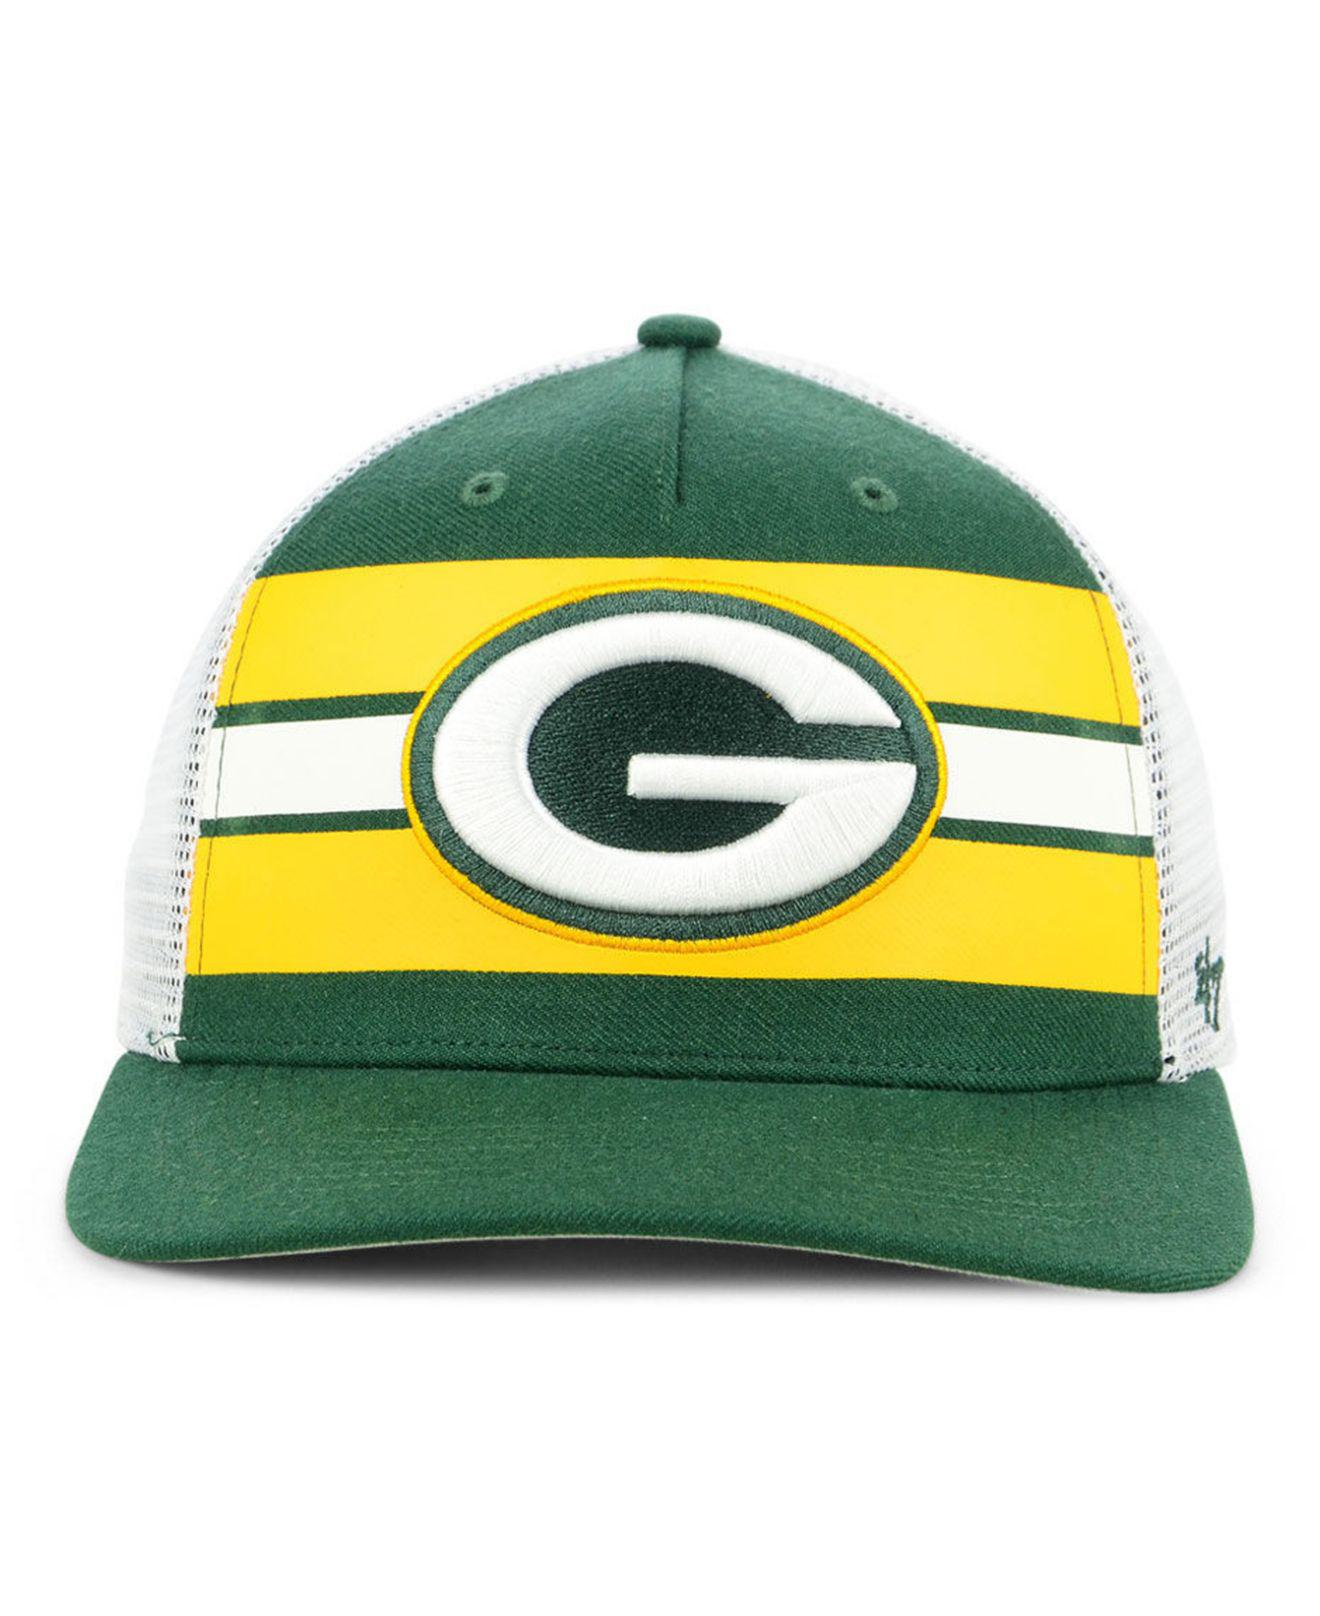 Lyst - 47 Brand Green Bay Packers Team Stripe Mvp Cap in Green for Men dadadd0c3